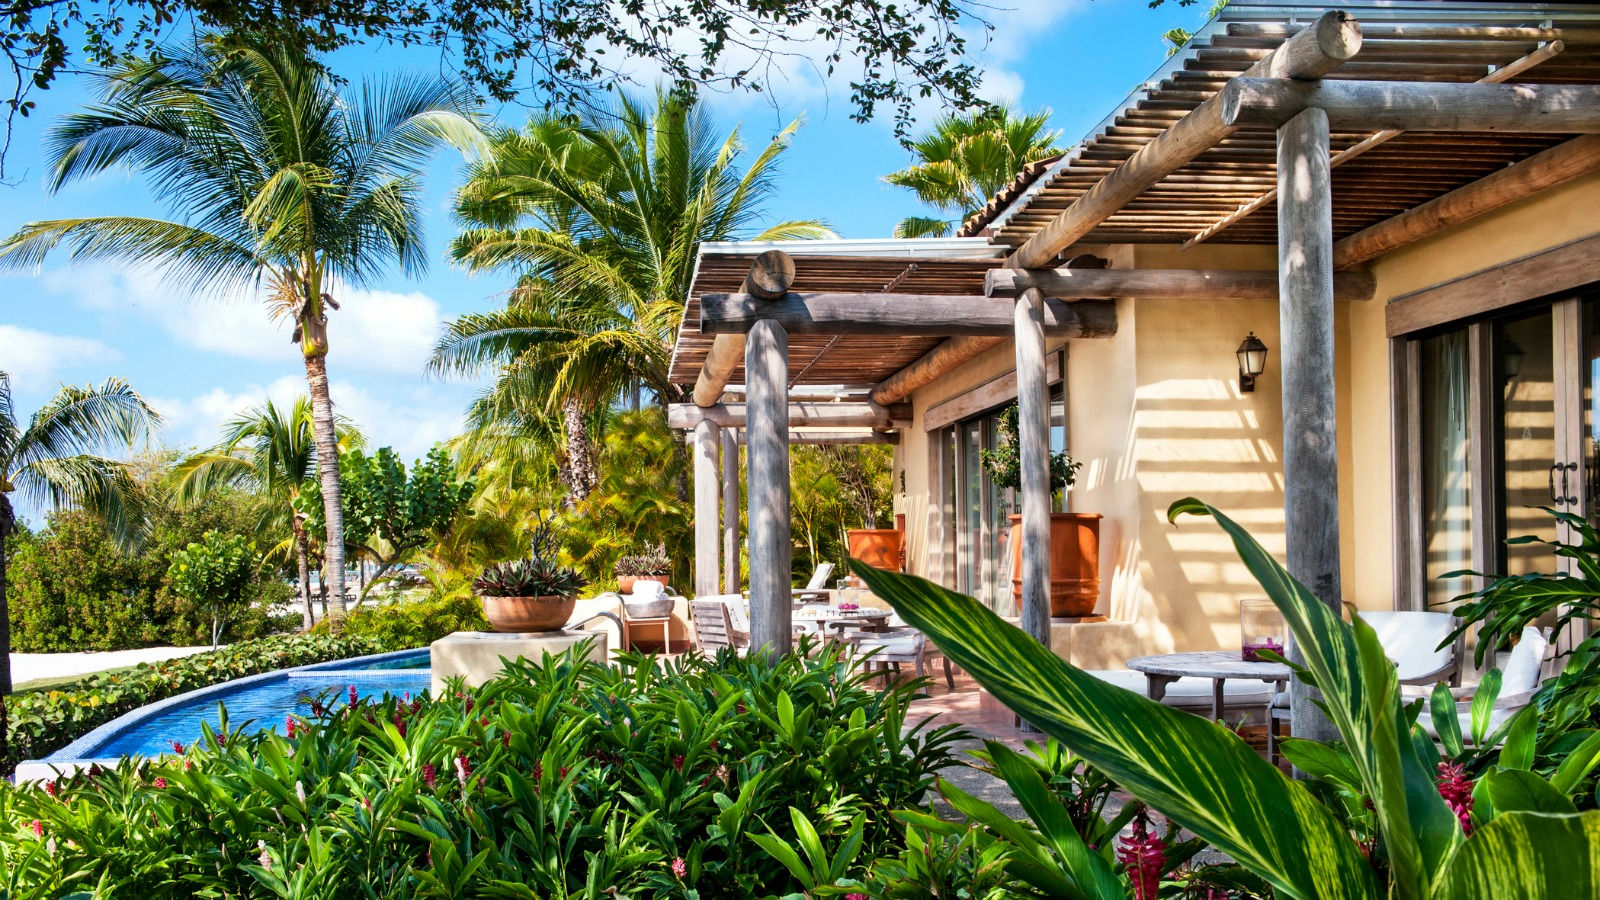 Suite Sueños - Luxury Two-Bedroom Villa -The St. Regis Punta Mita